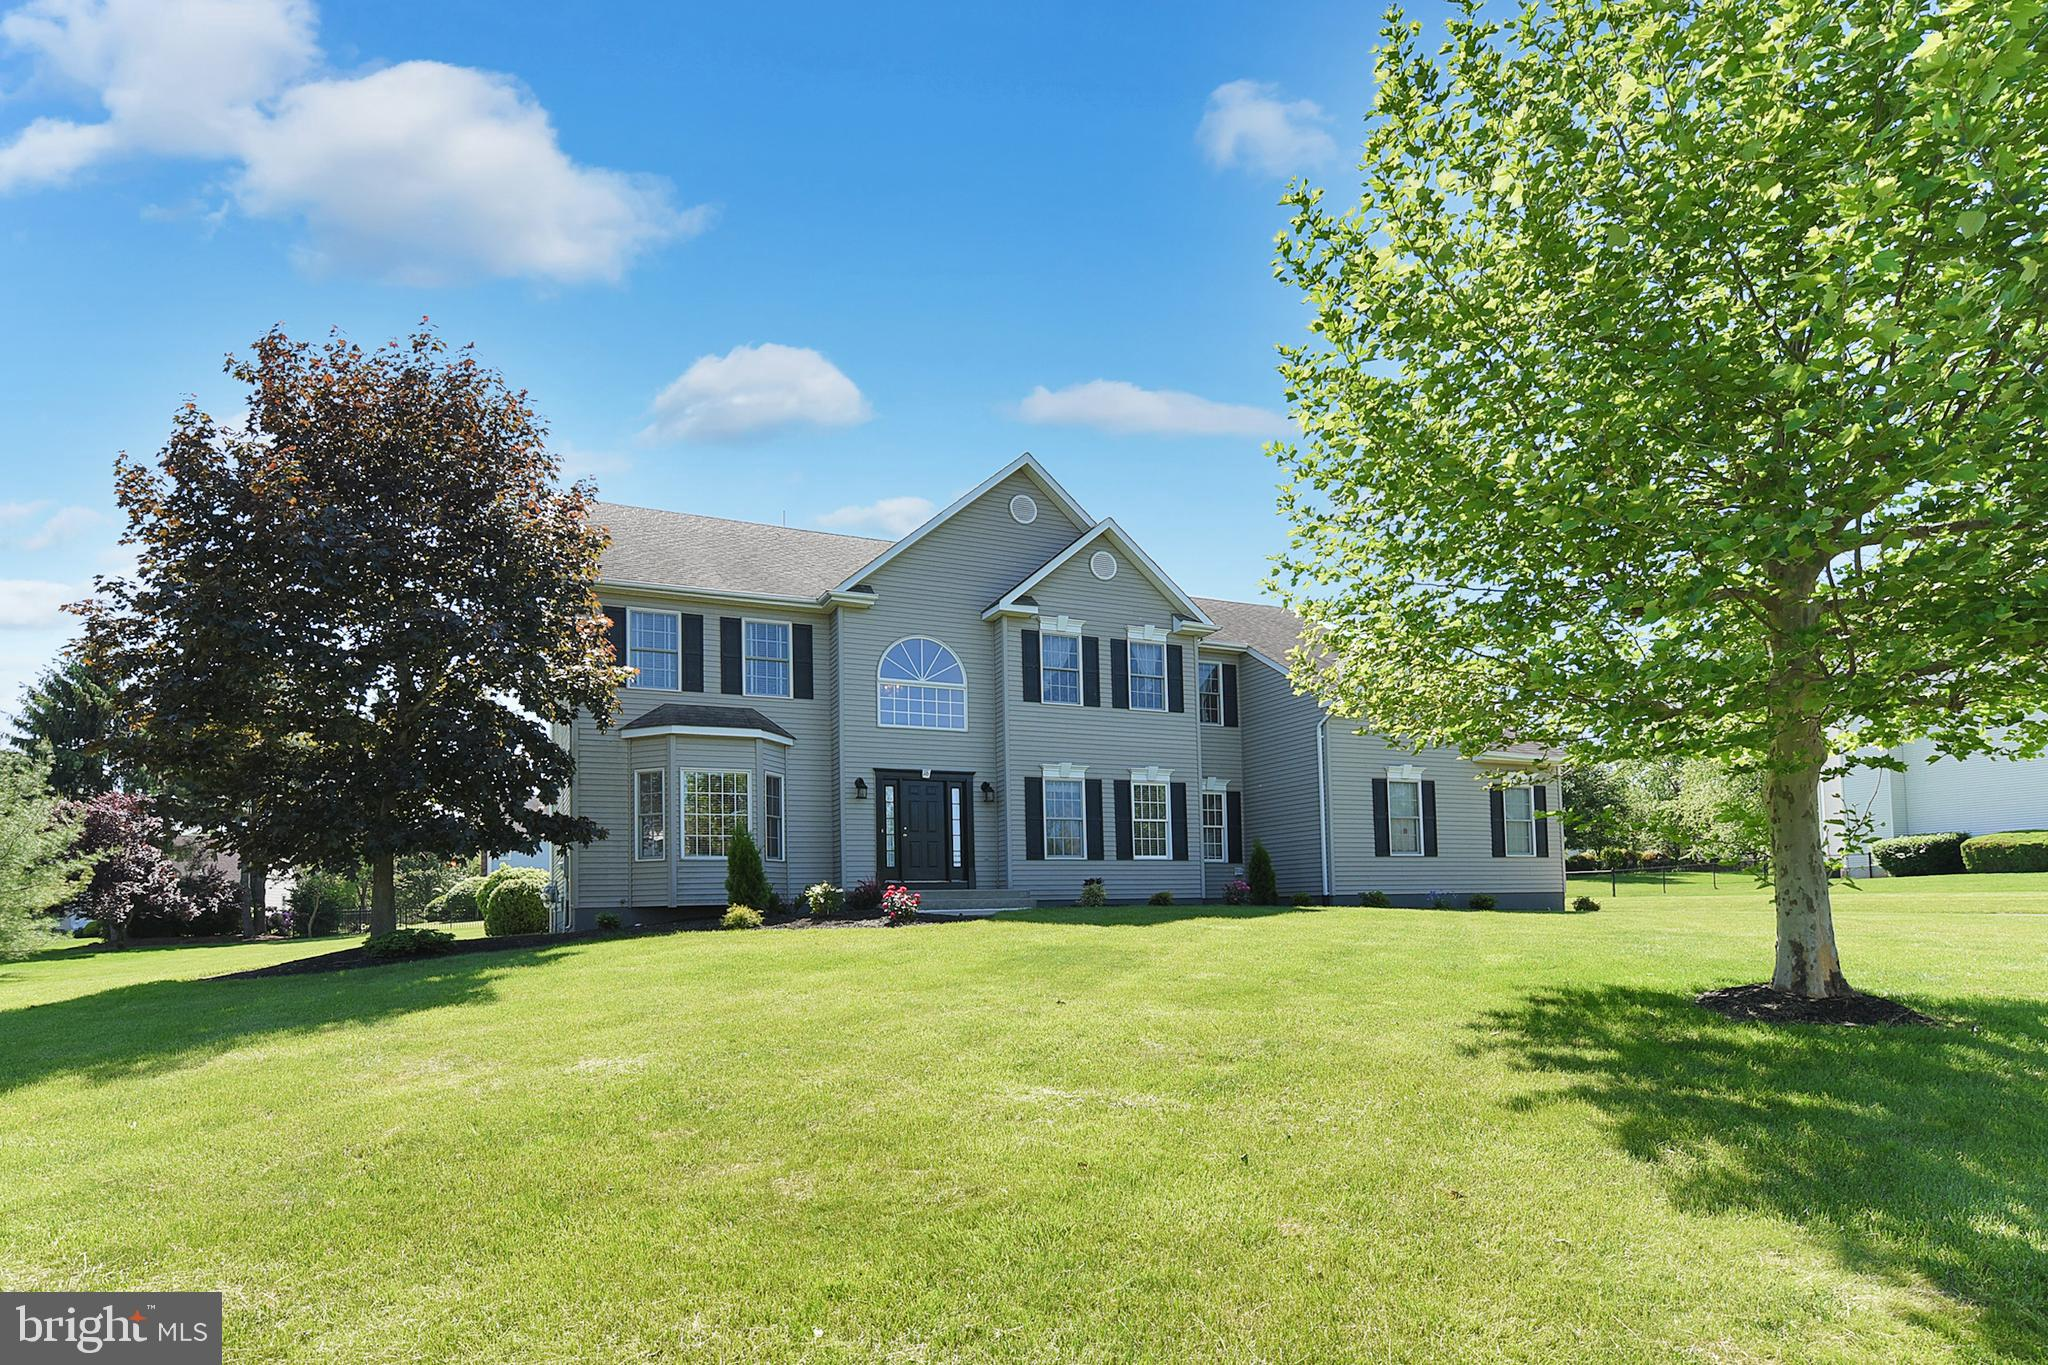 16 ANDERSON WAY, MONMOUTH JUNCTION, NJ 08852